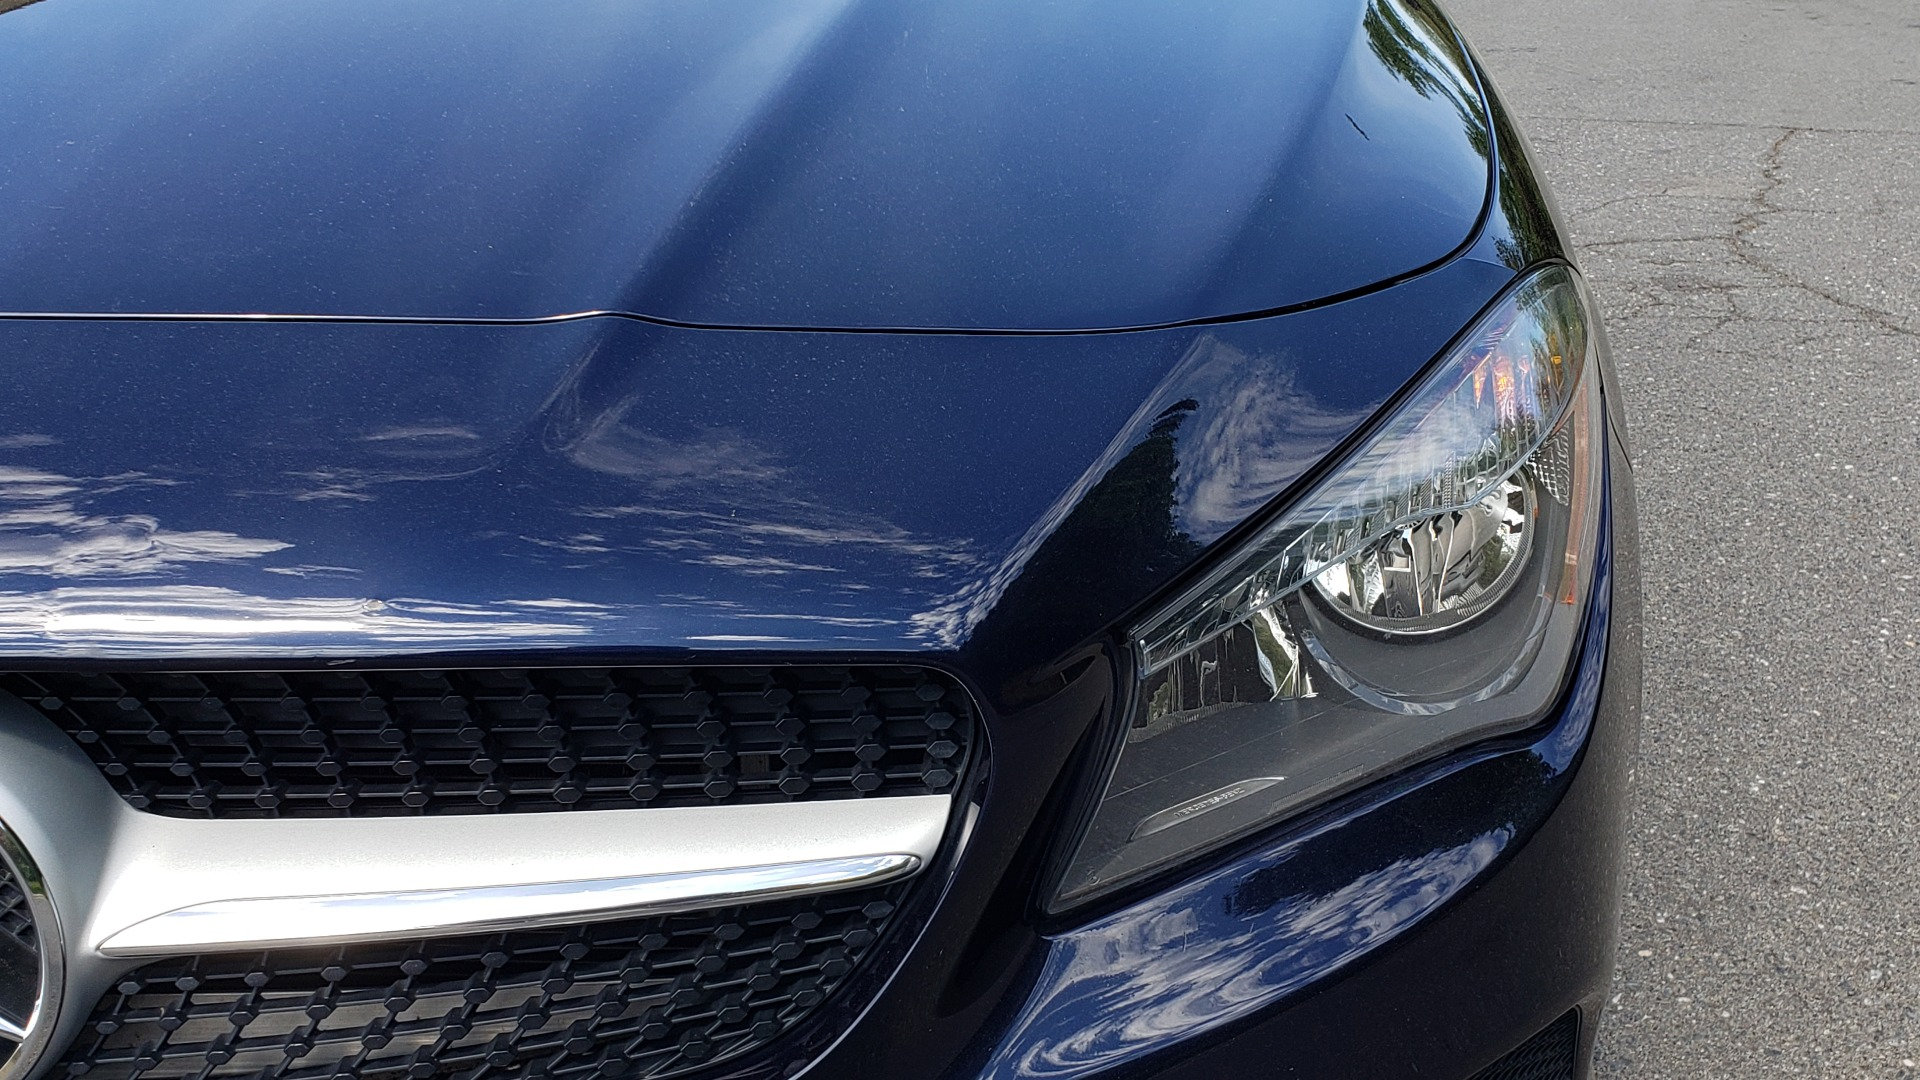 Used 2017 Mercedes-Benz CLA 250 PREMIUM / PANO-ROOF / HK SOUNDS / BSM / REARVIEW for sale Sold at Formula Imports in Charlotte NC 28227 19